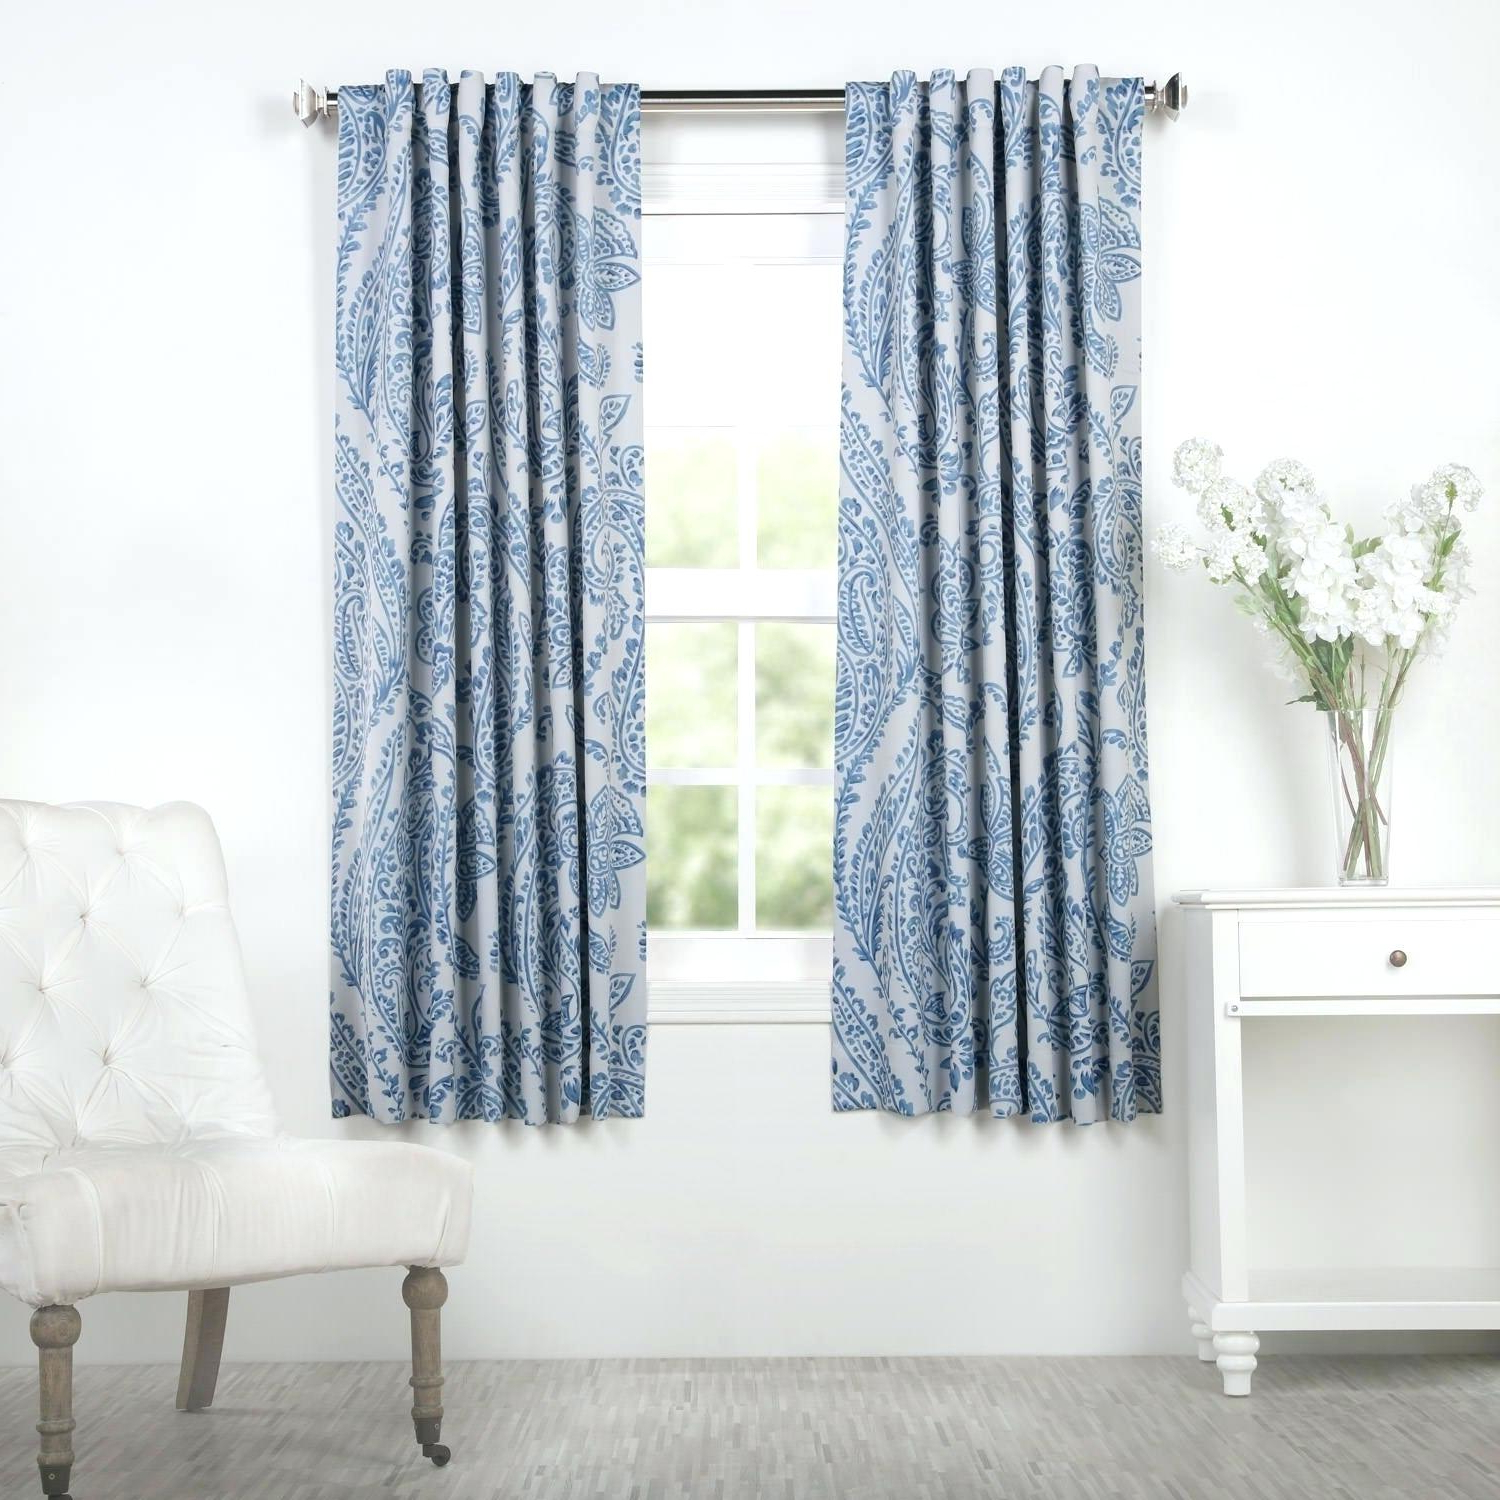 Most Recently Released Overstock Blackout Curtains – Elevatedcreations.co Regarding Overseas Faux Silk Blackout Curtain Panel Pairs (Gallery 11 of 20)